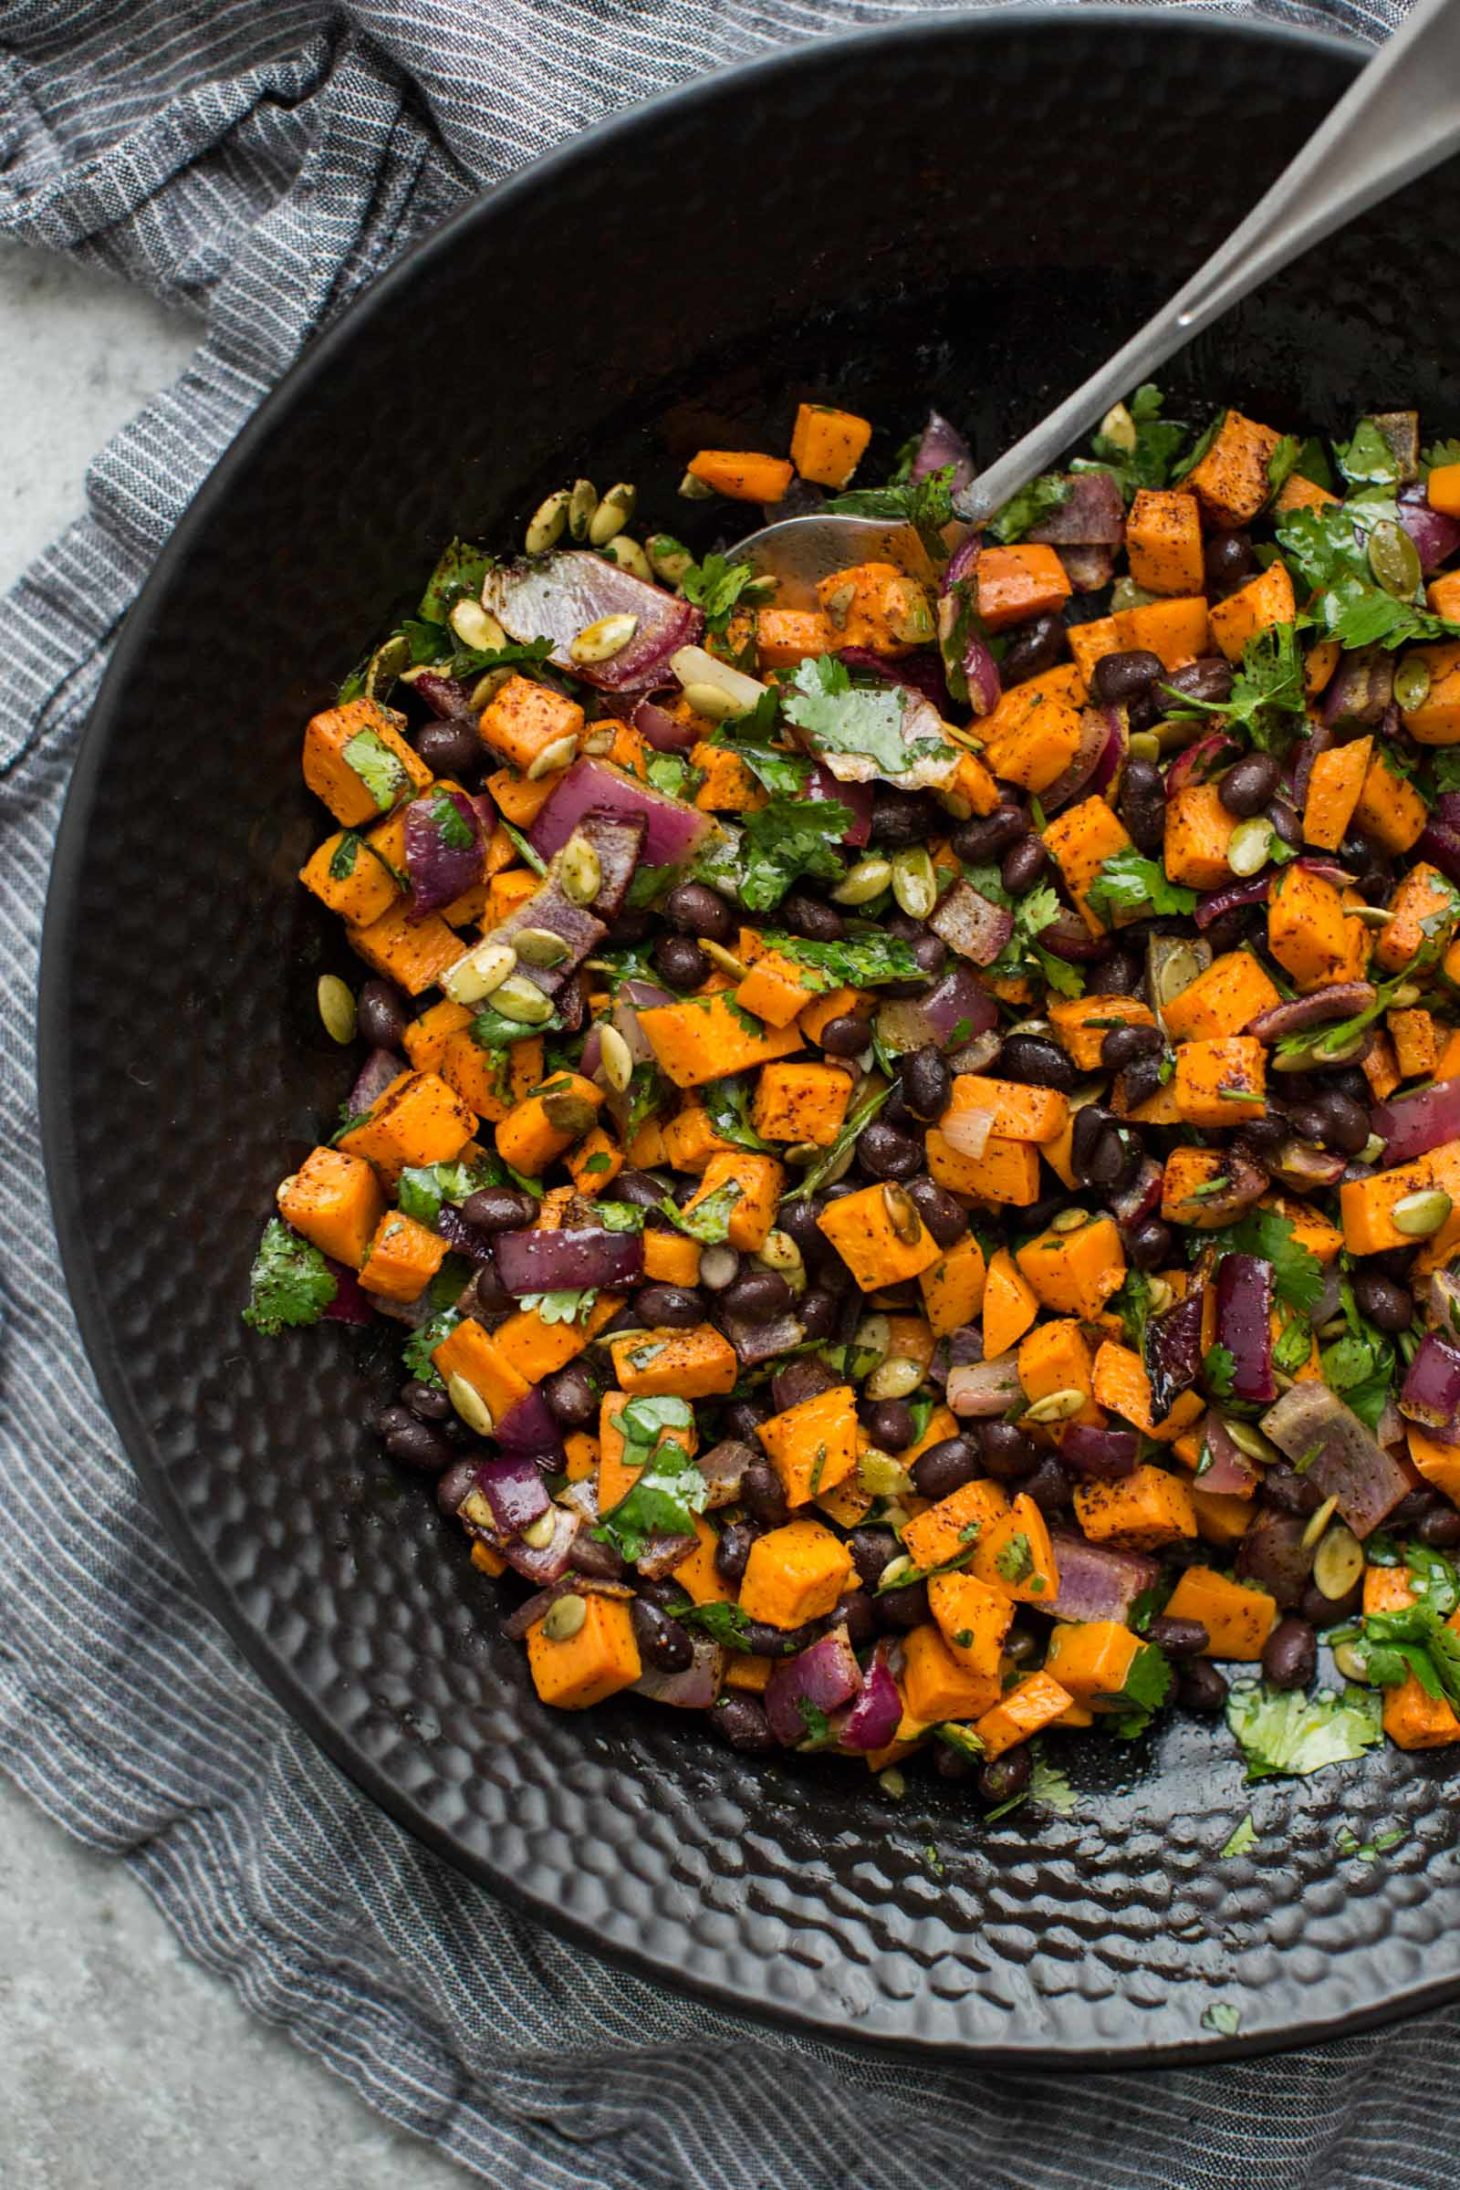 Black Bean Salad with Roasted Sweet Potatoes | Vegetarian Picnic Recipes